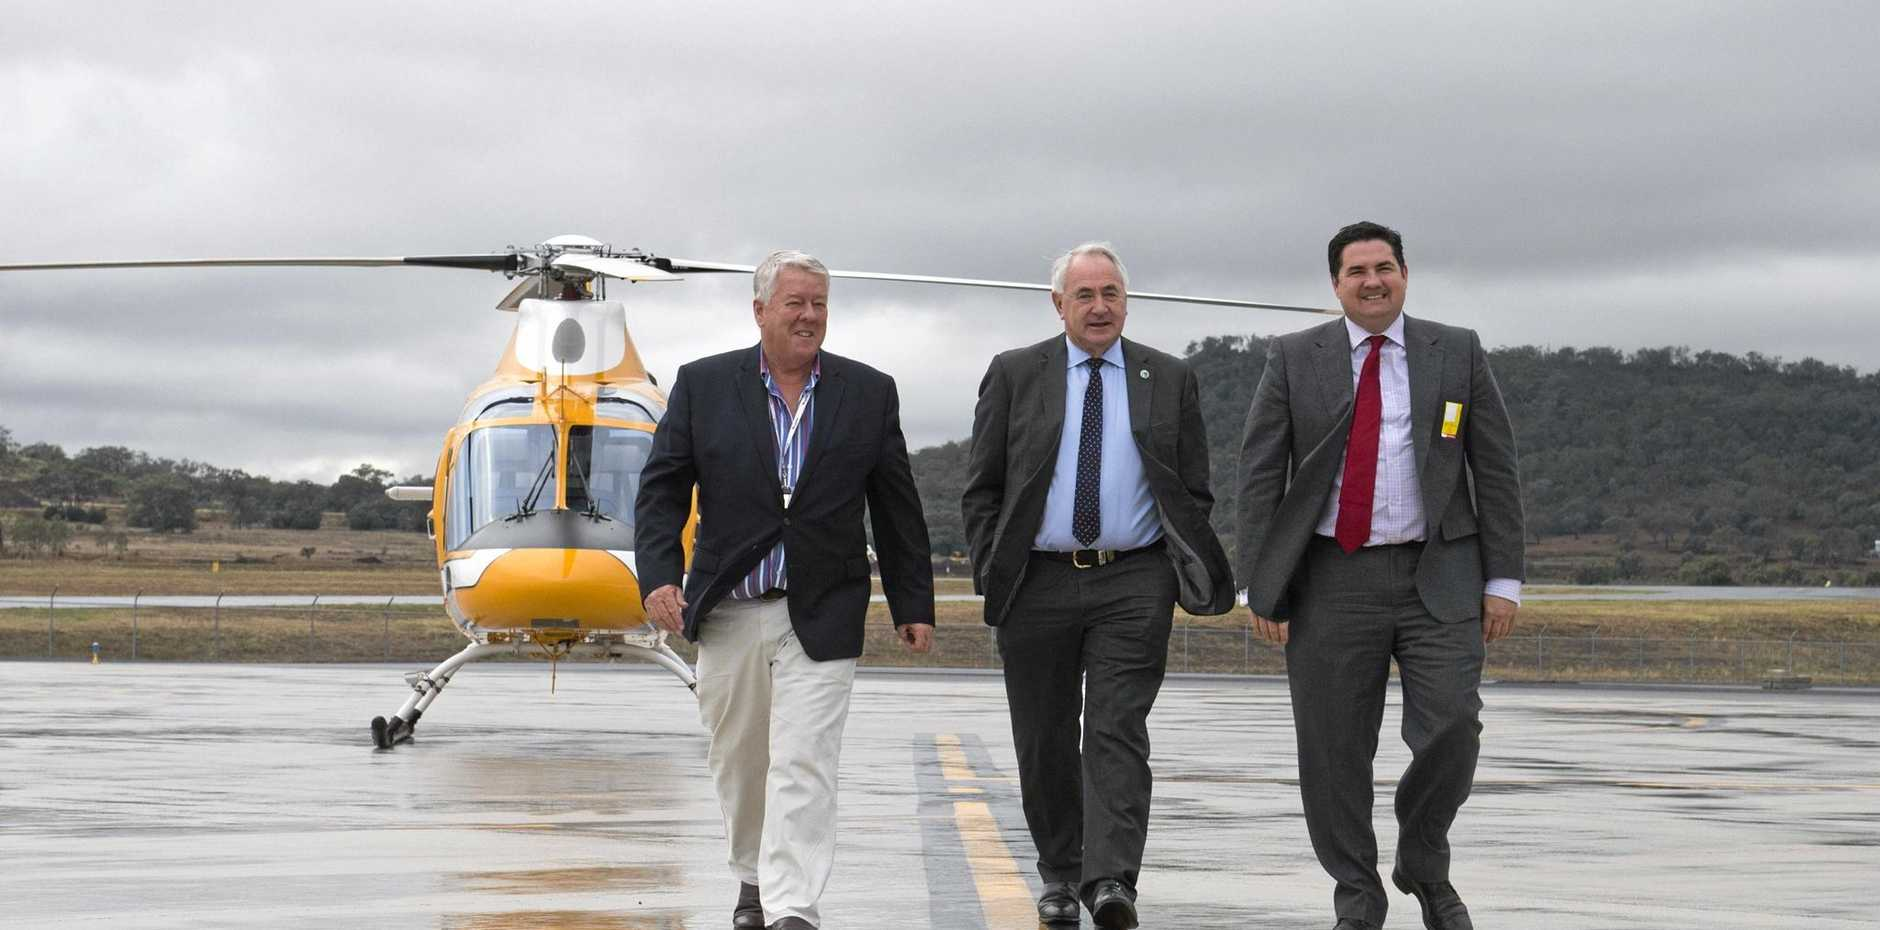 CHINA TRIP: On the tarmac are (from left) John Wagner, Paul Antonio and Ben Lyons at TSBE's Access China 16 delegation announcement taking passengers from Wellcamp airport to China flying Qantas for a five-day program aimed at activating trade opportunities.